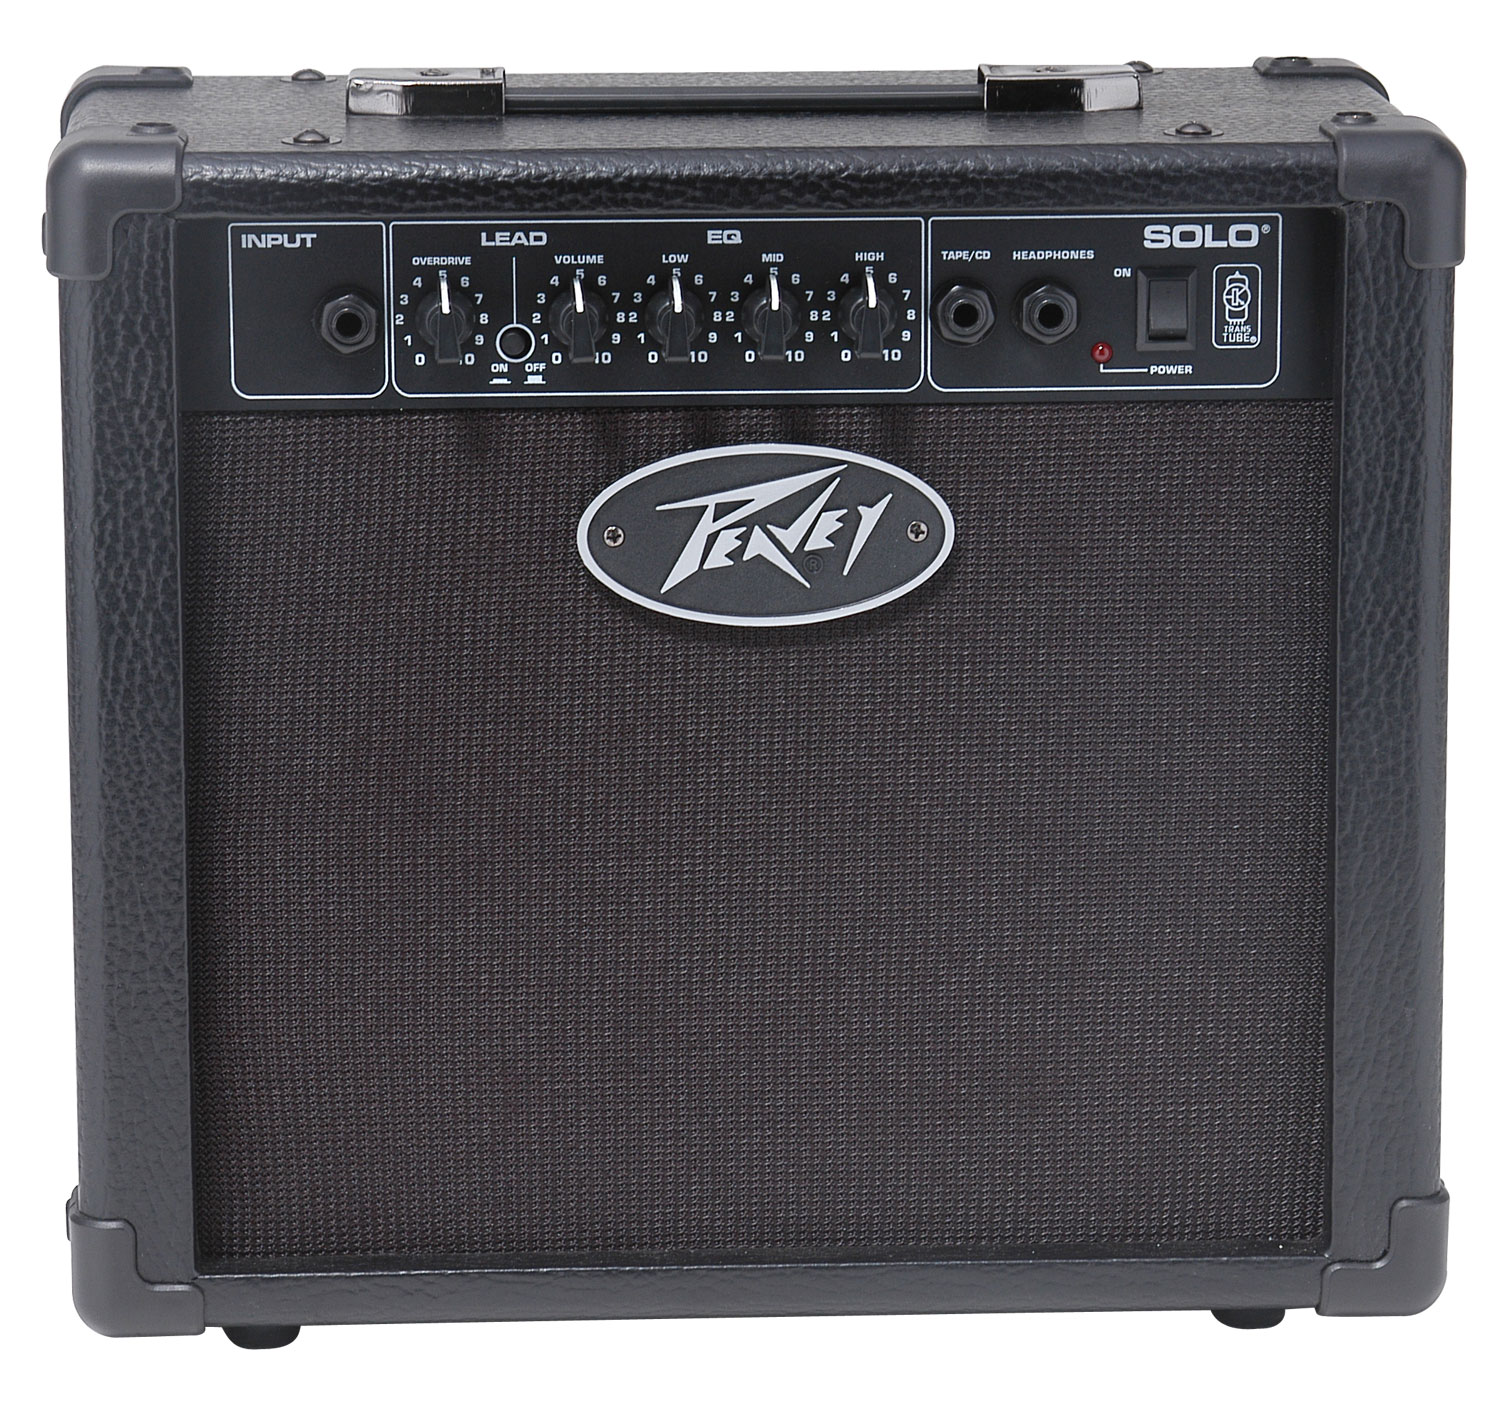 solo guitar amp guitar combo amp peavey. Black Bedroom Furniture Sets. Home Design Ideas